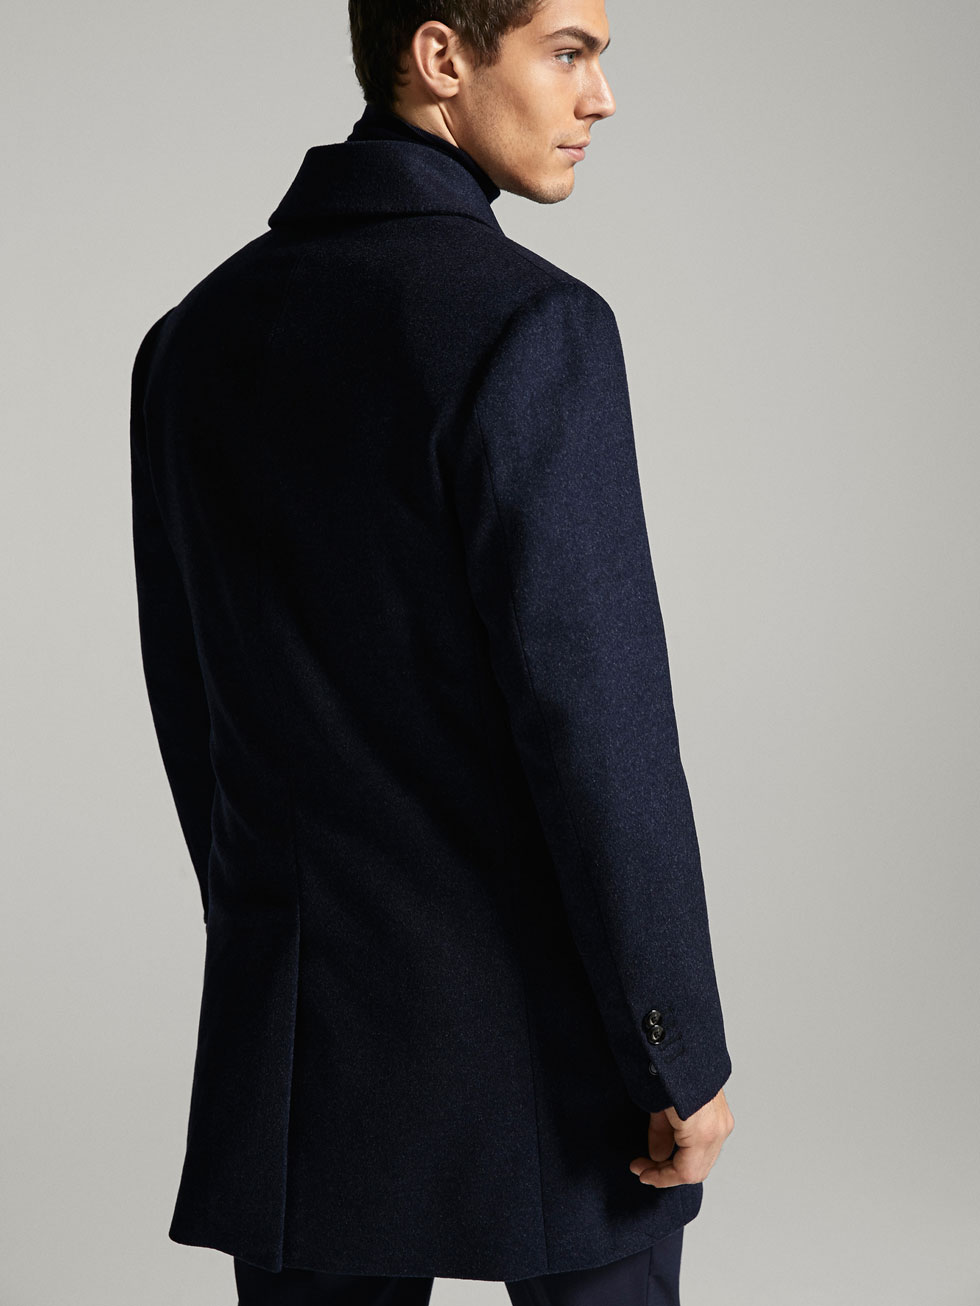 LIMITED EDITION SLIM FIT NAVY BLUE WOOL/CASHMERE COAT - Men ...